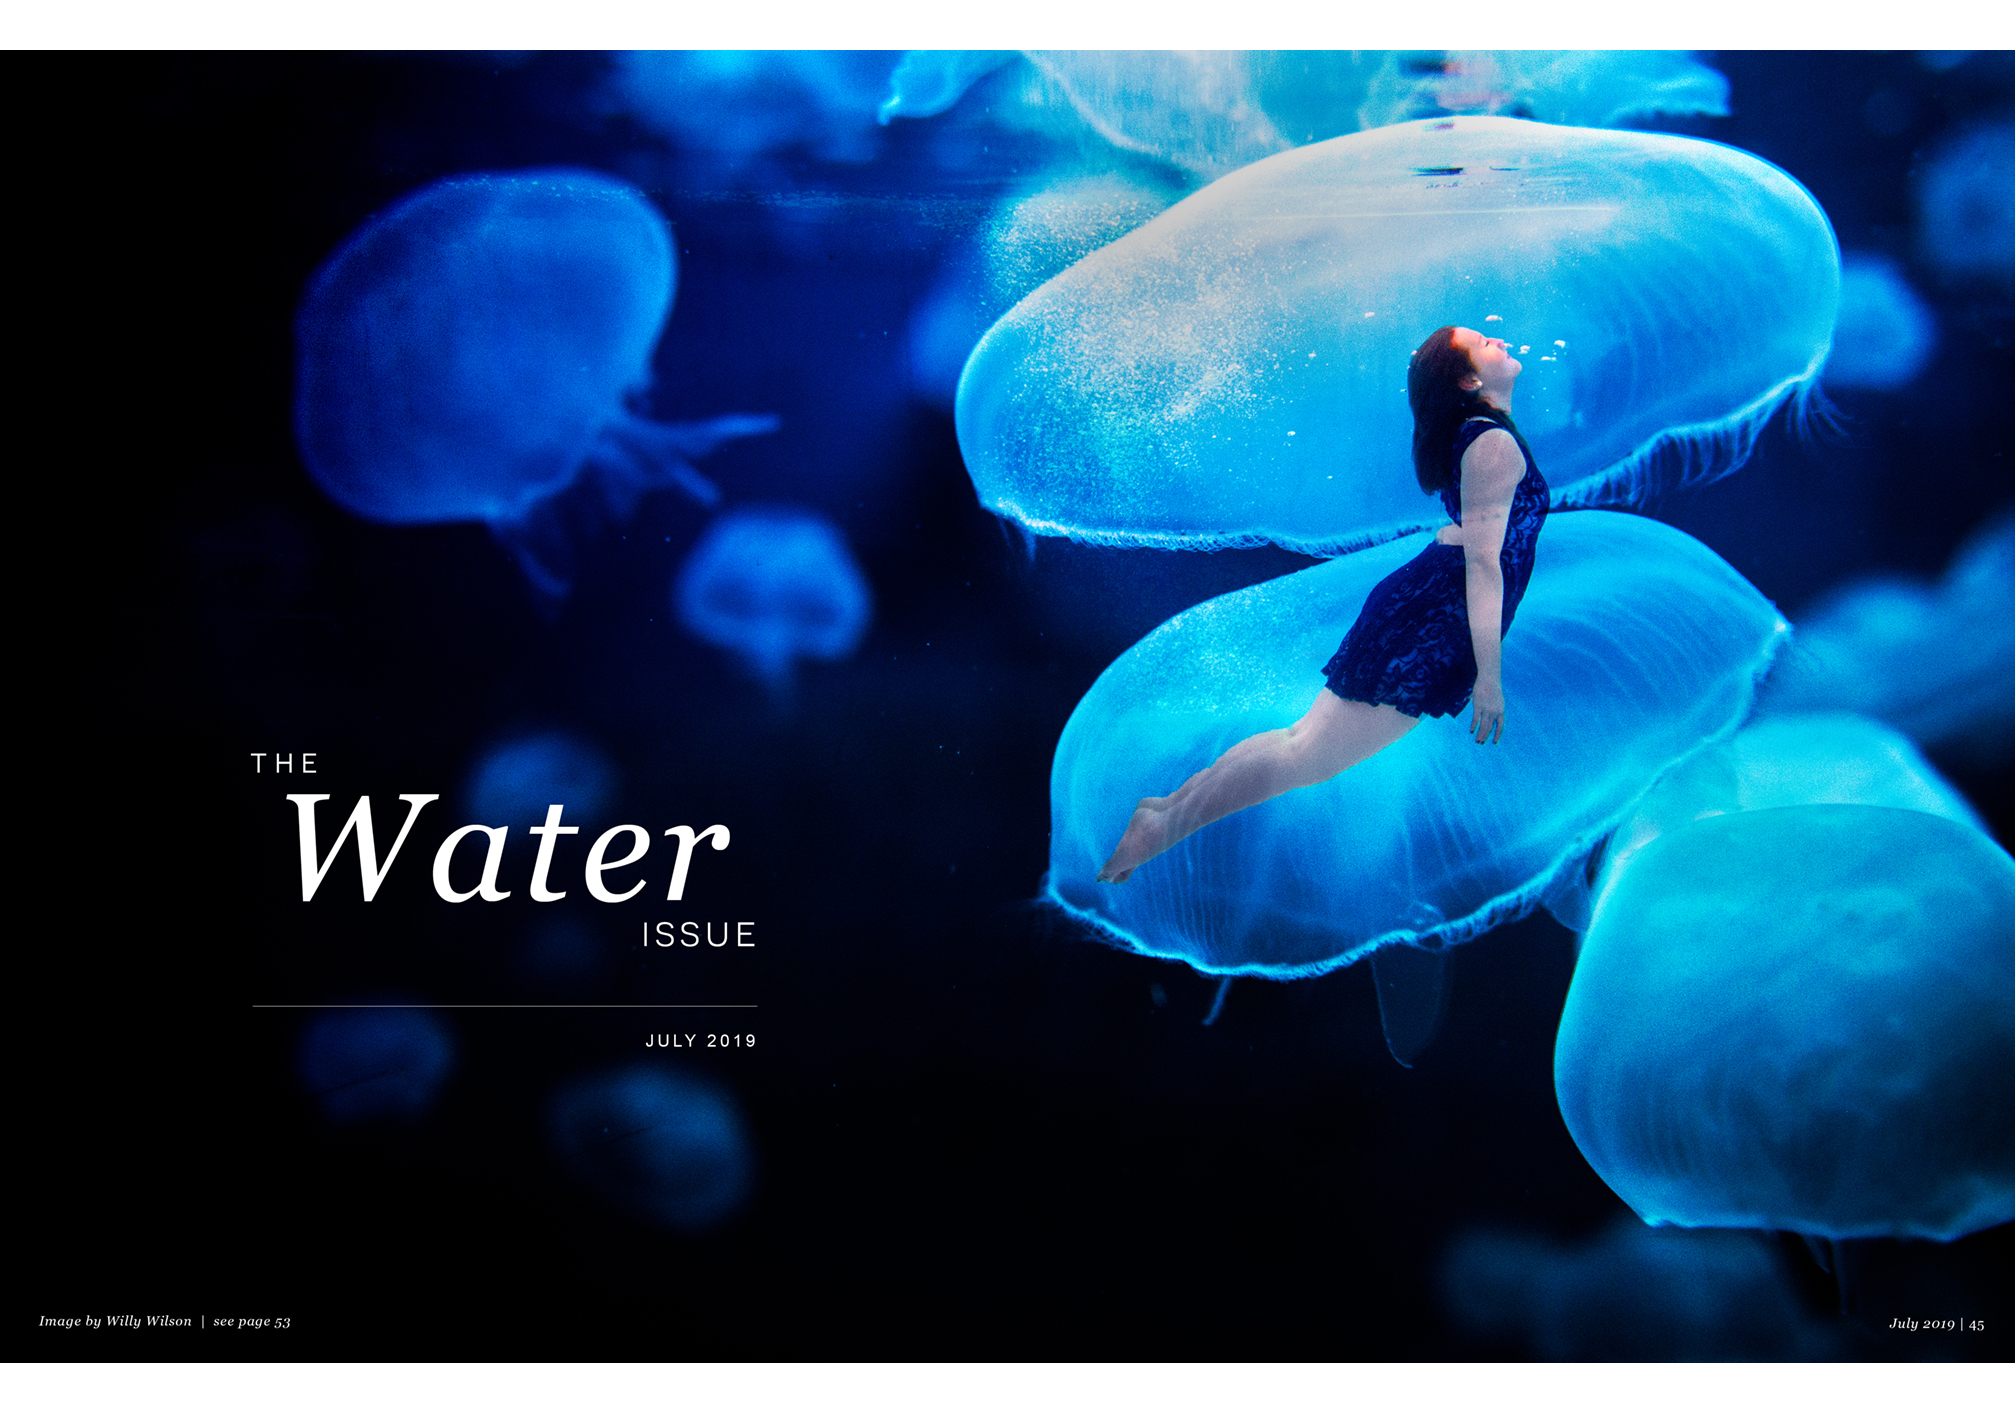 The Water Issue July 2019, woman in blue dress, swimming with giant jellyfish